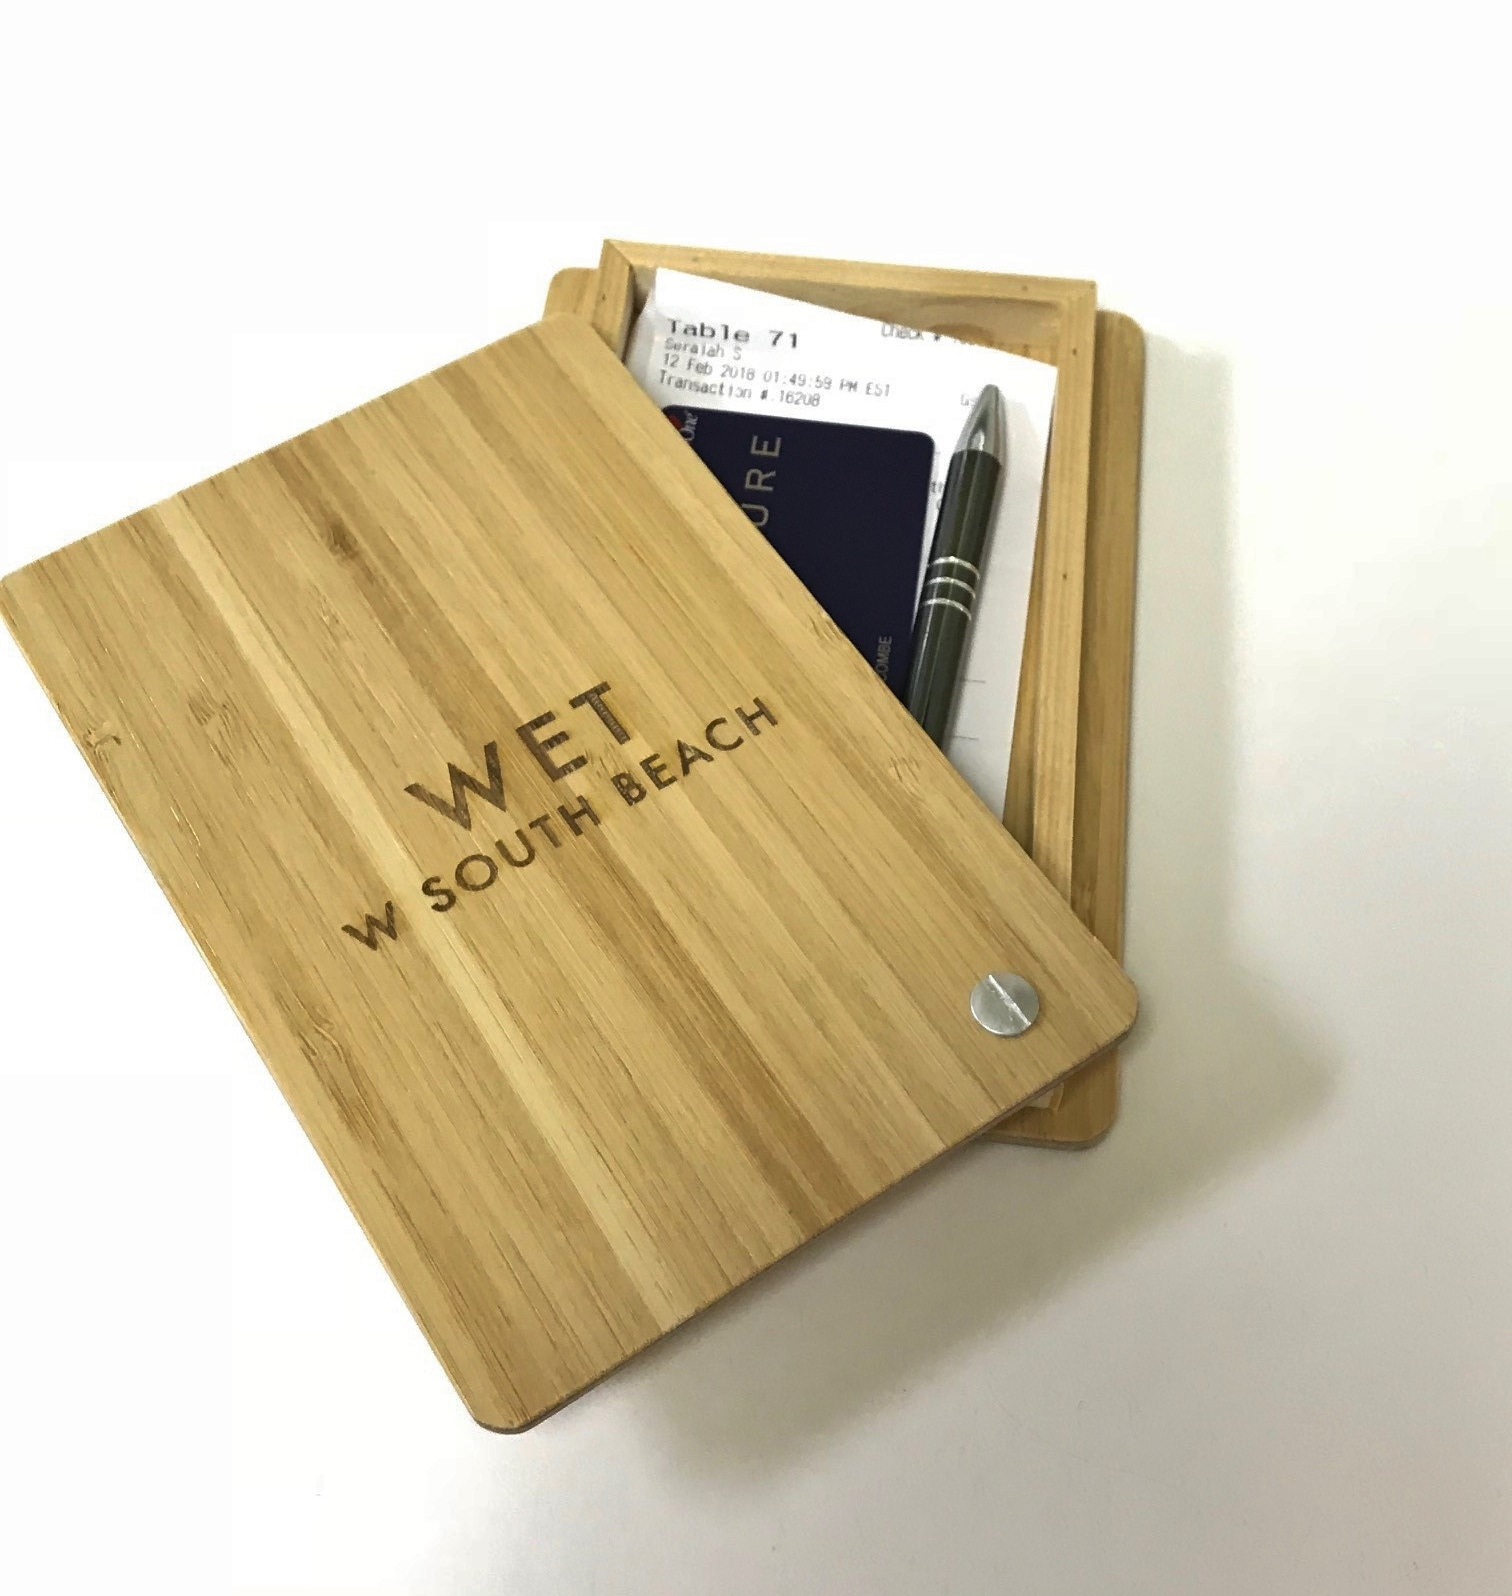 Bamboo Wood Box Check Presenter